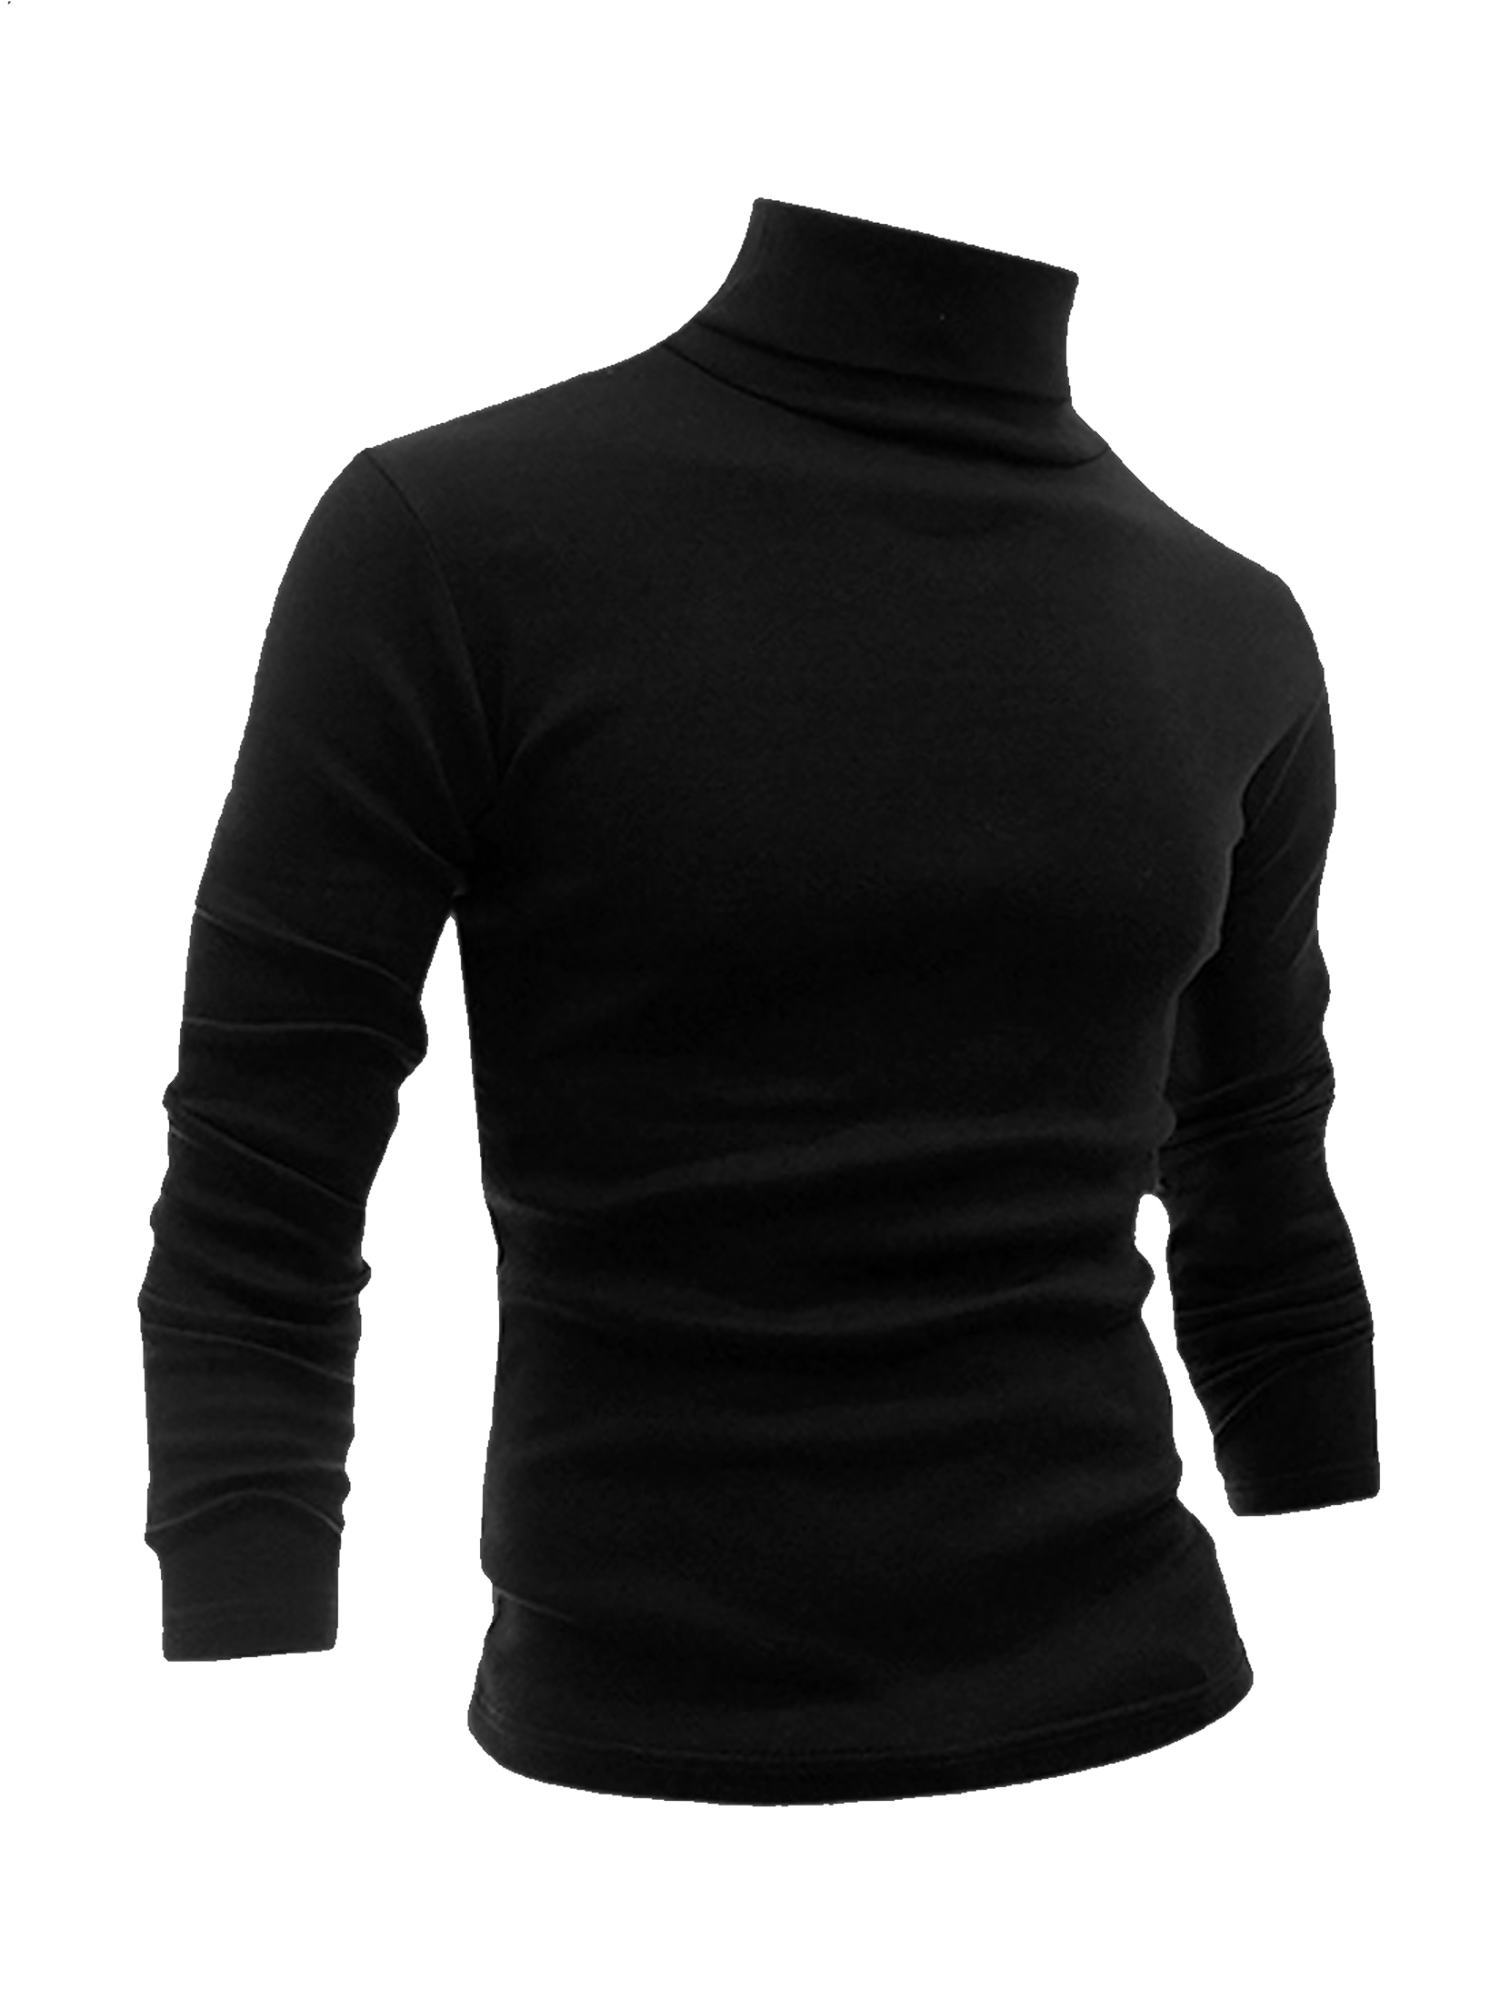 Unique Bargains - Men's Turtle Neck Full Sleeves Stretchy Slim Fit